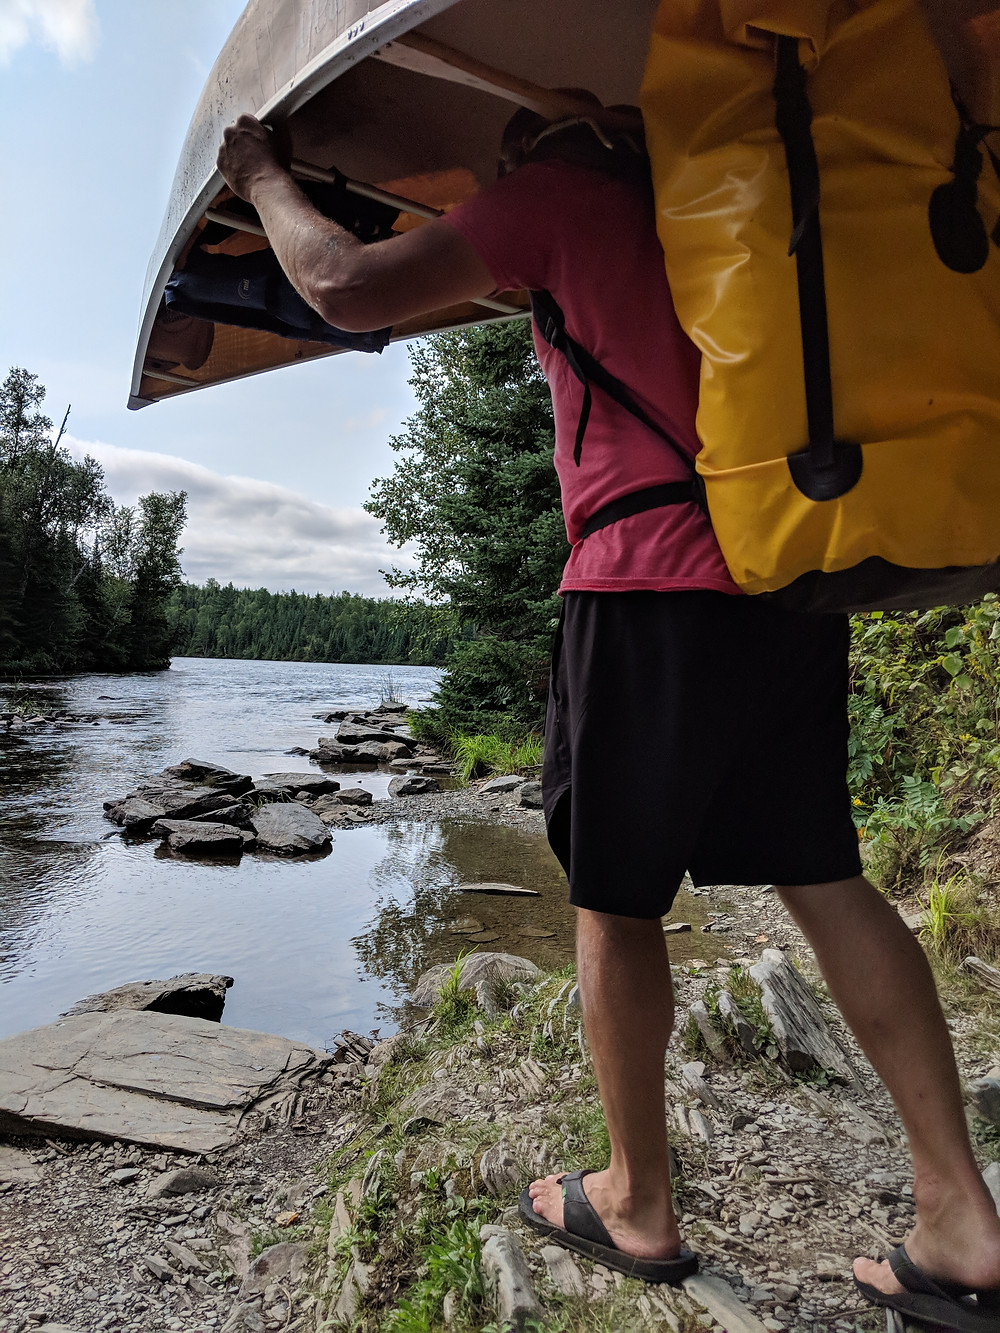 Scott portaging with our new backpack and canoe while we prepared our packing list for the Boundary Waters